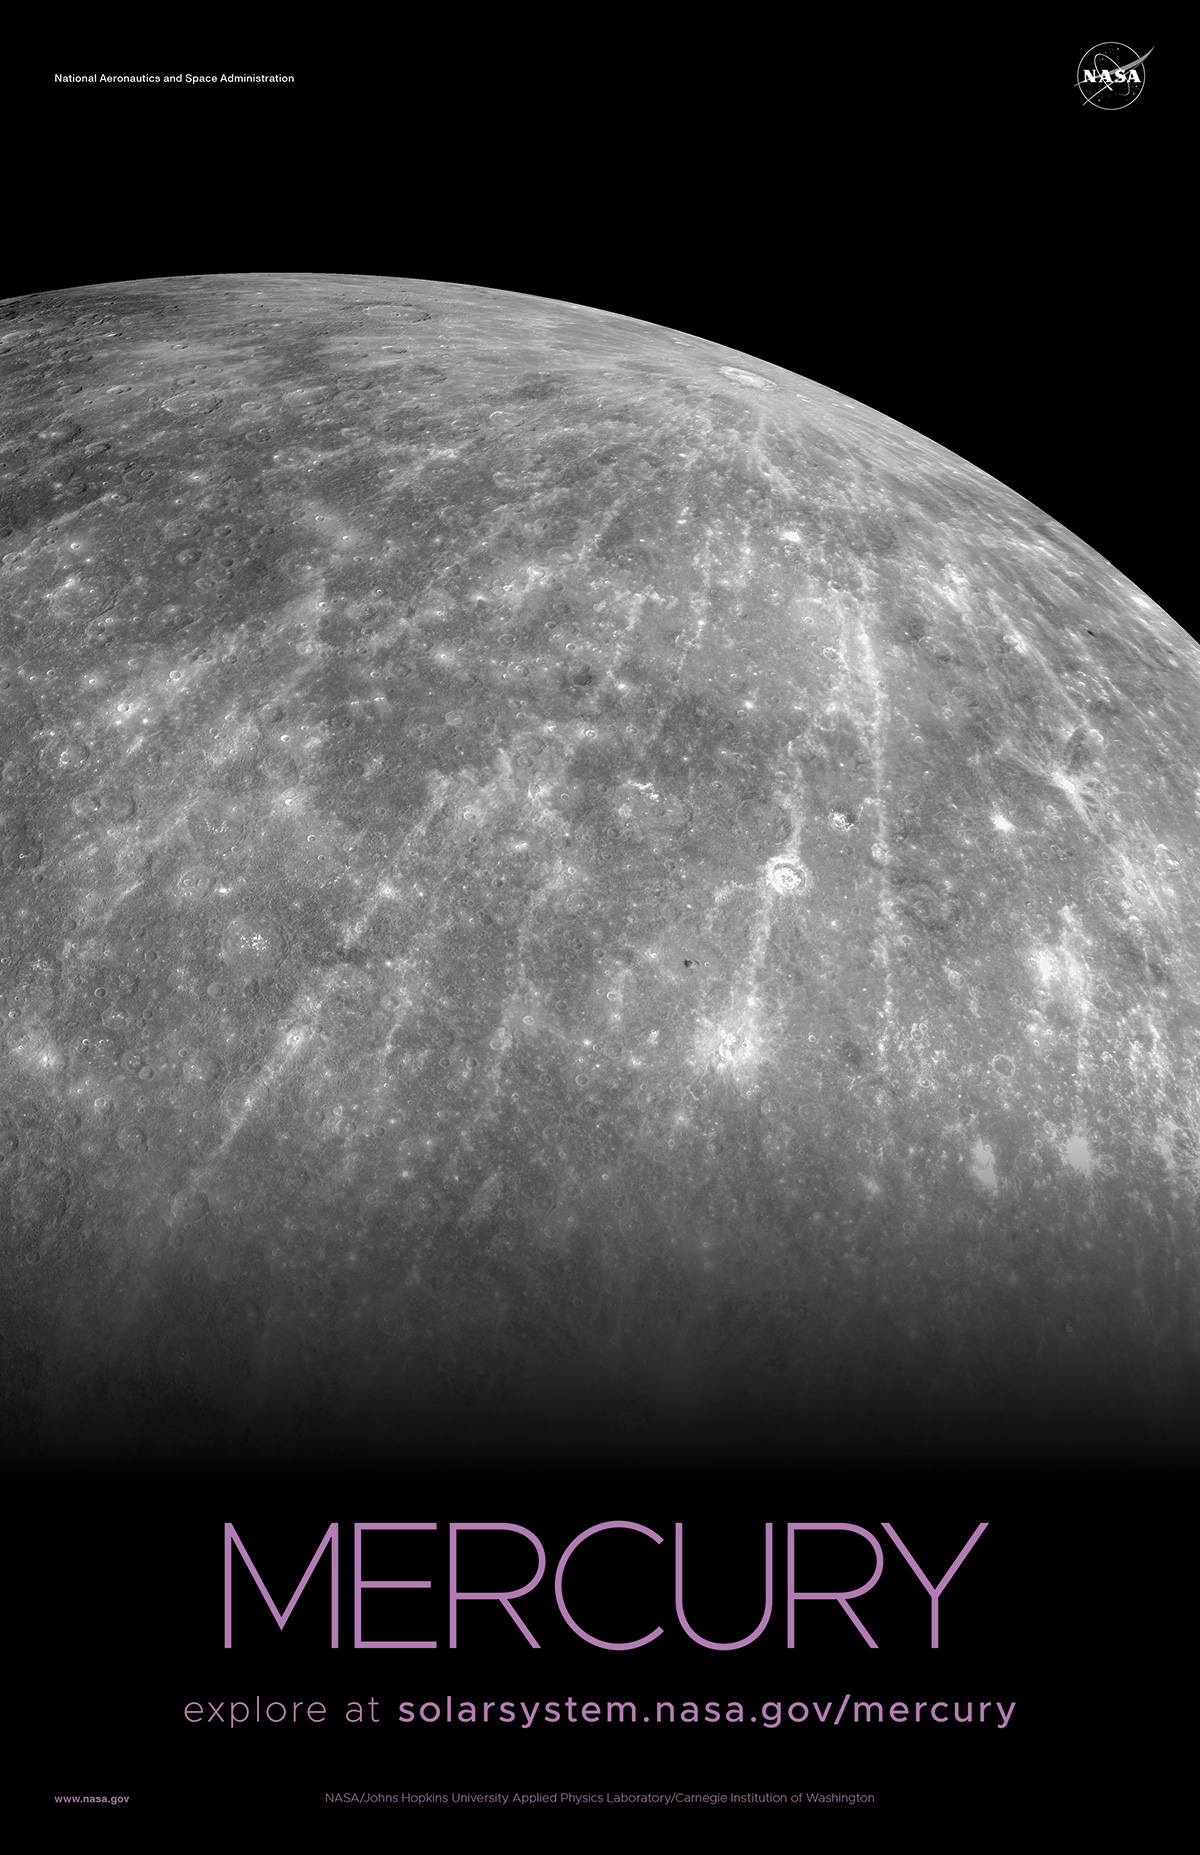 Close up view of the limb of Mercury showing a battered, cratered surface.